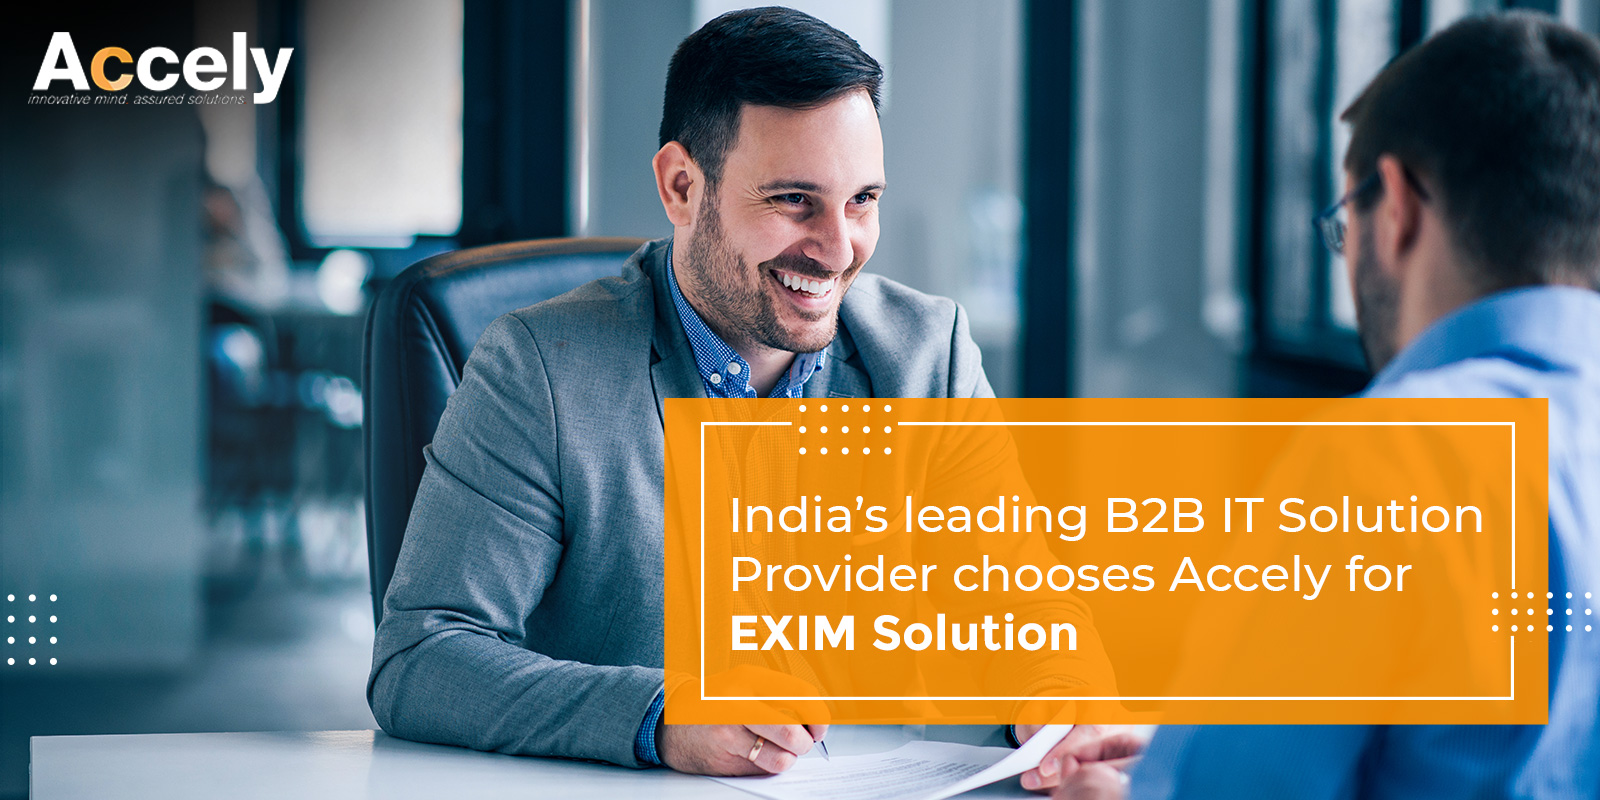 India's leading B2B IT Solution provider chooses Accely for EXIM Automation